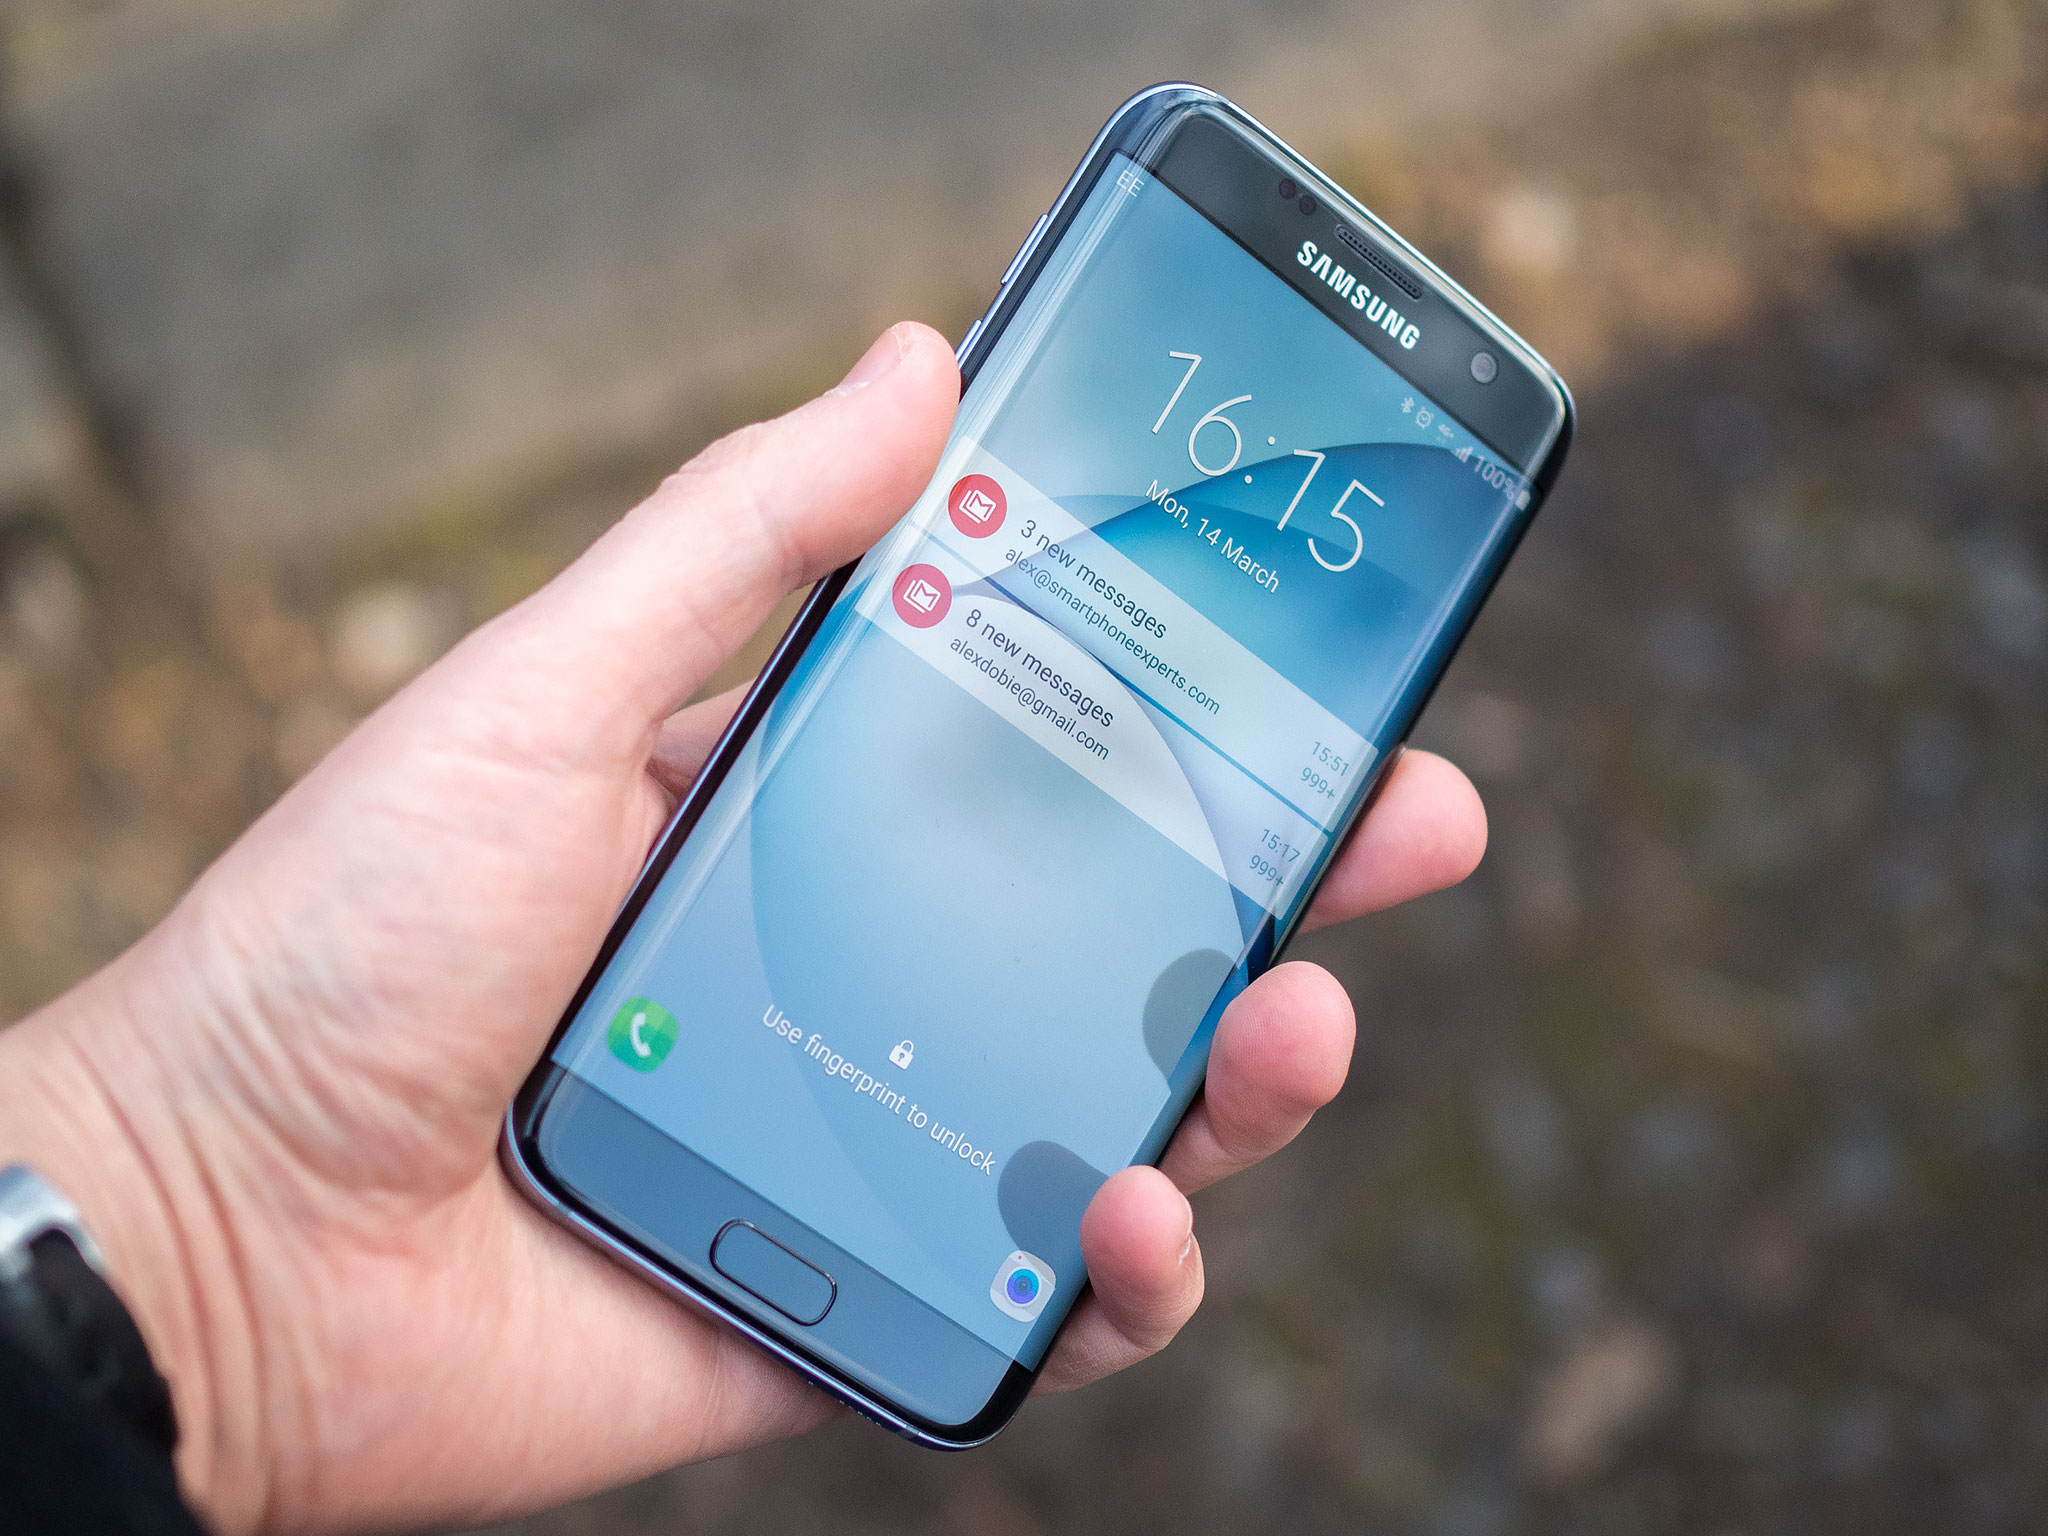 UK Galaxy S7s updated with Wi-Fi calling, touchscreen fix ...